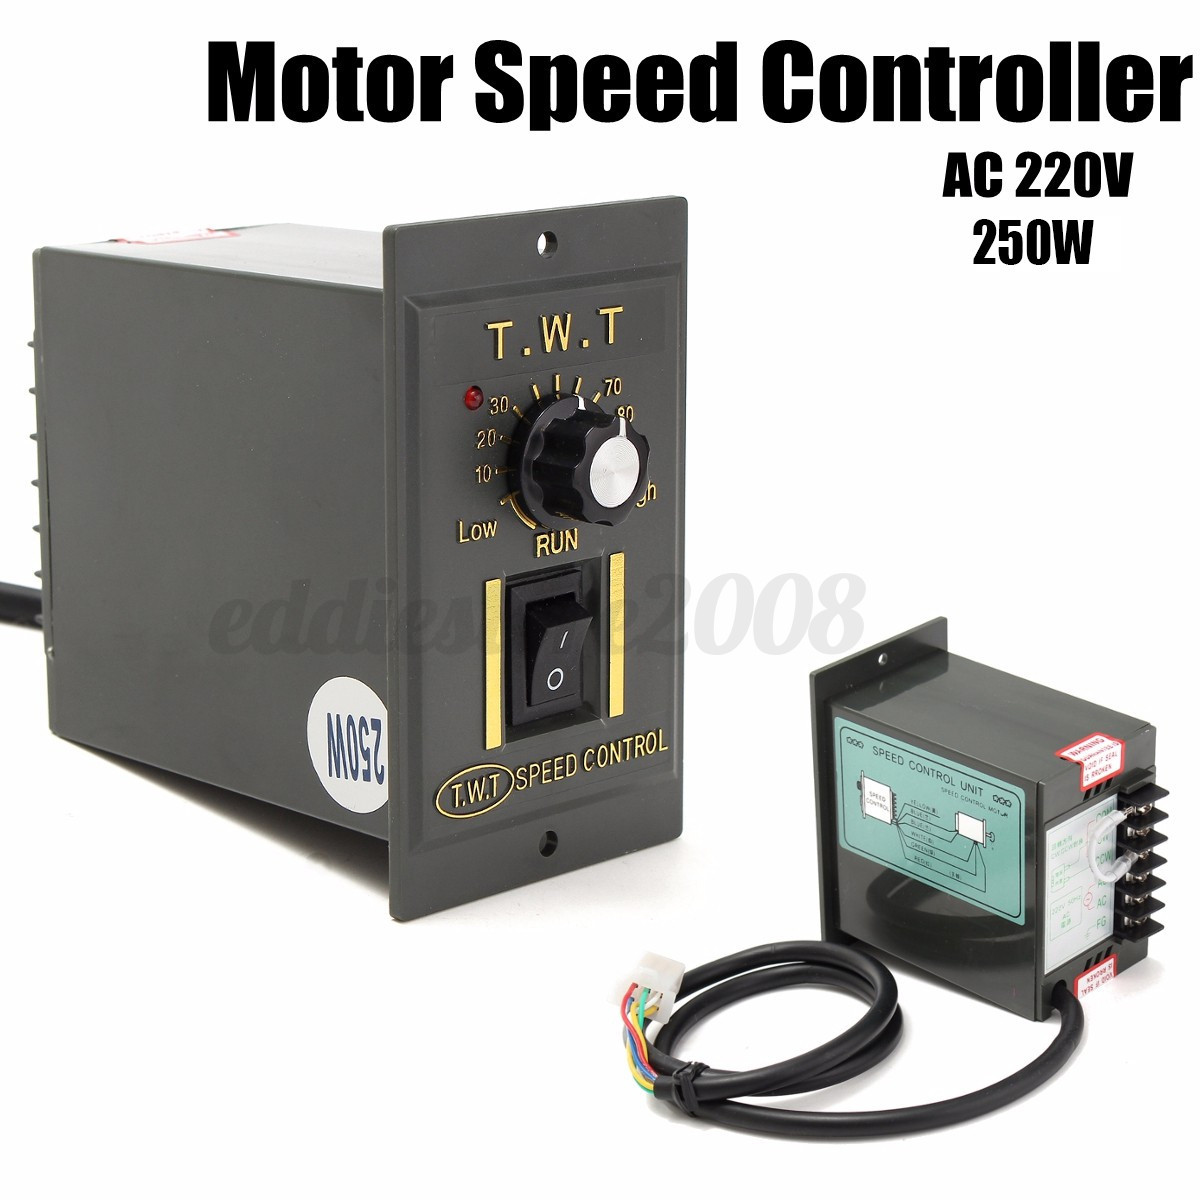 AC 220V 250W Motor Speed Controller Variable Frequency Converter ...